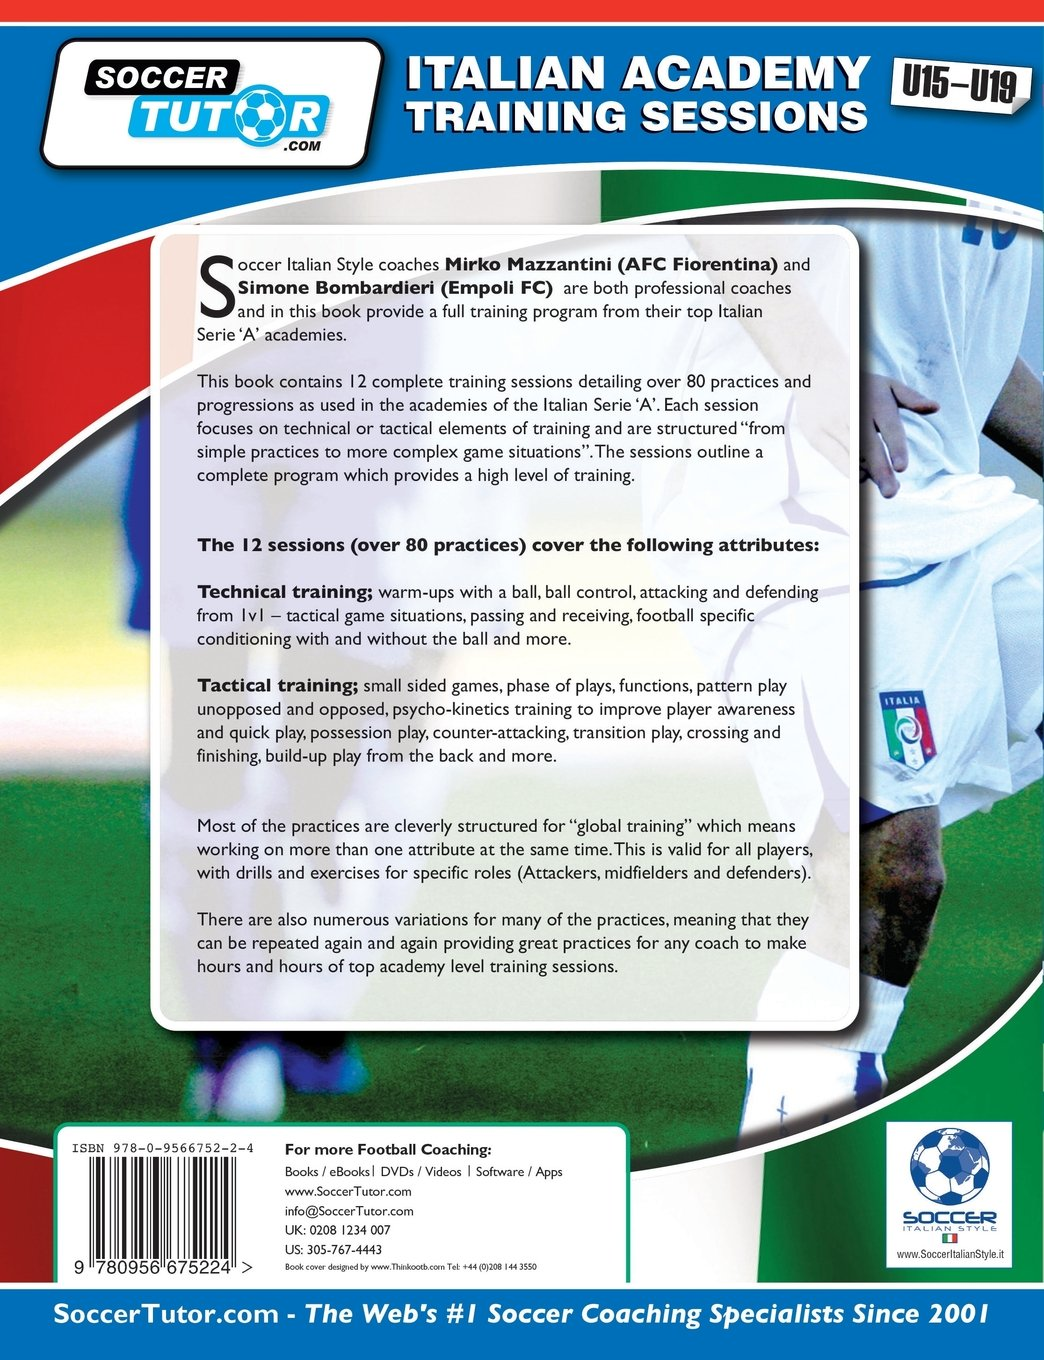 ITALIAN ACADEMY TRAINING SESSIONS PDF DOWNLOAD - Top Pdf